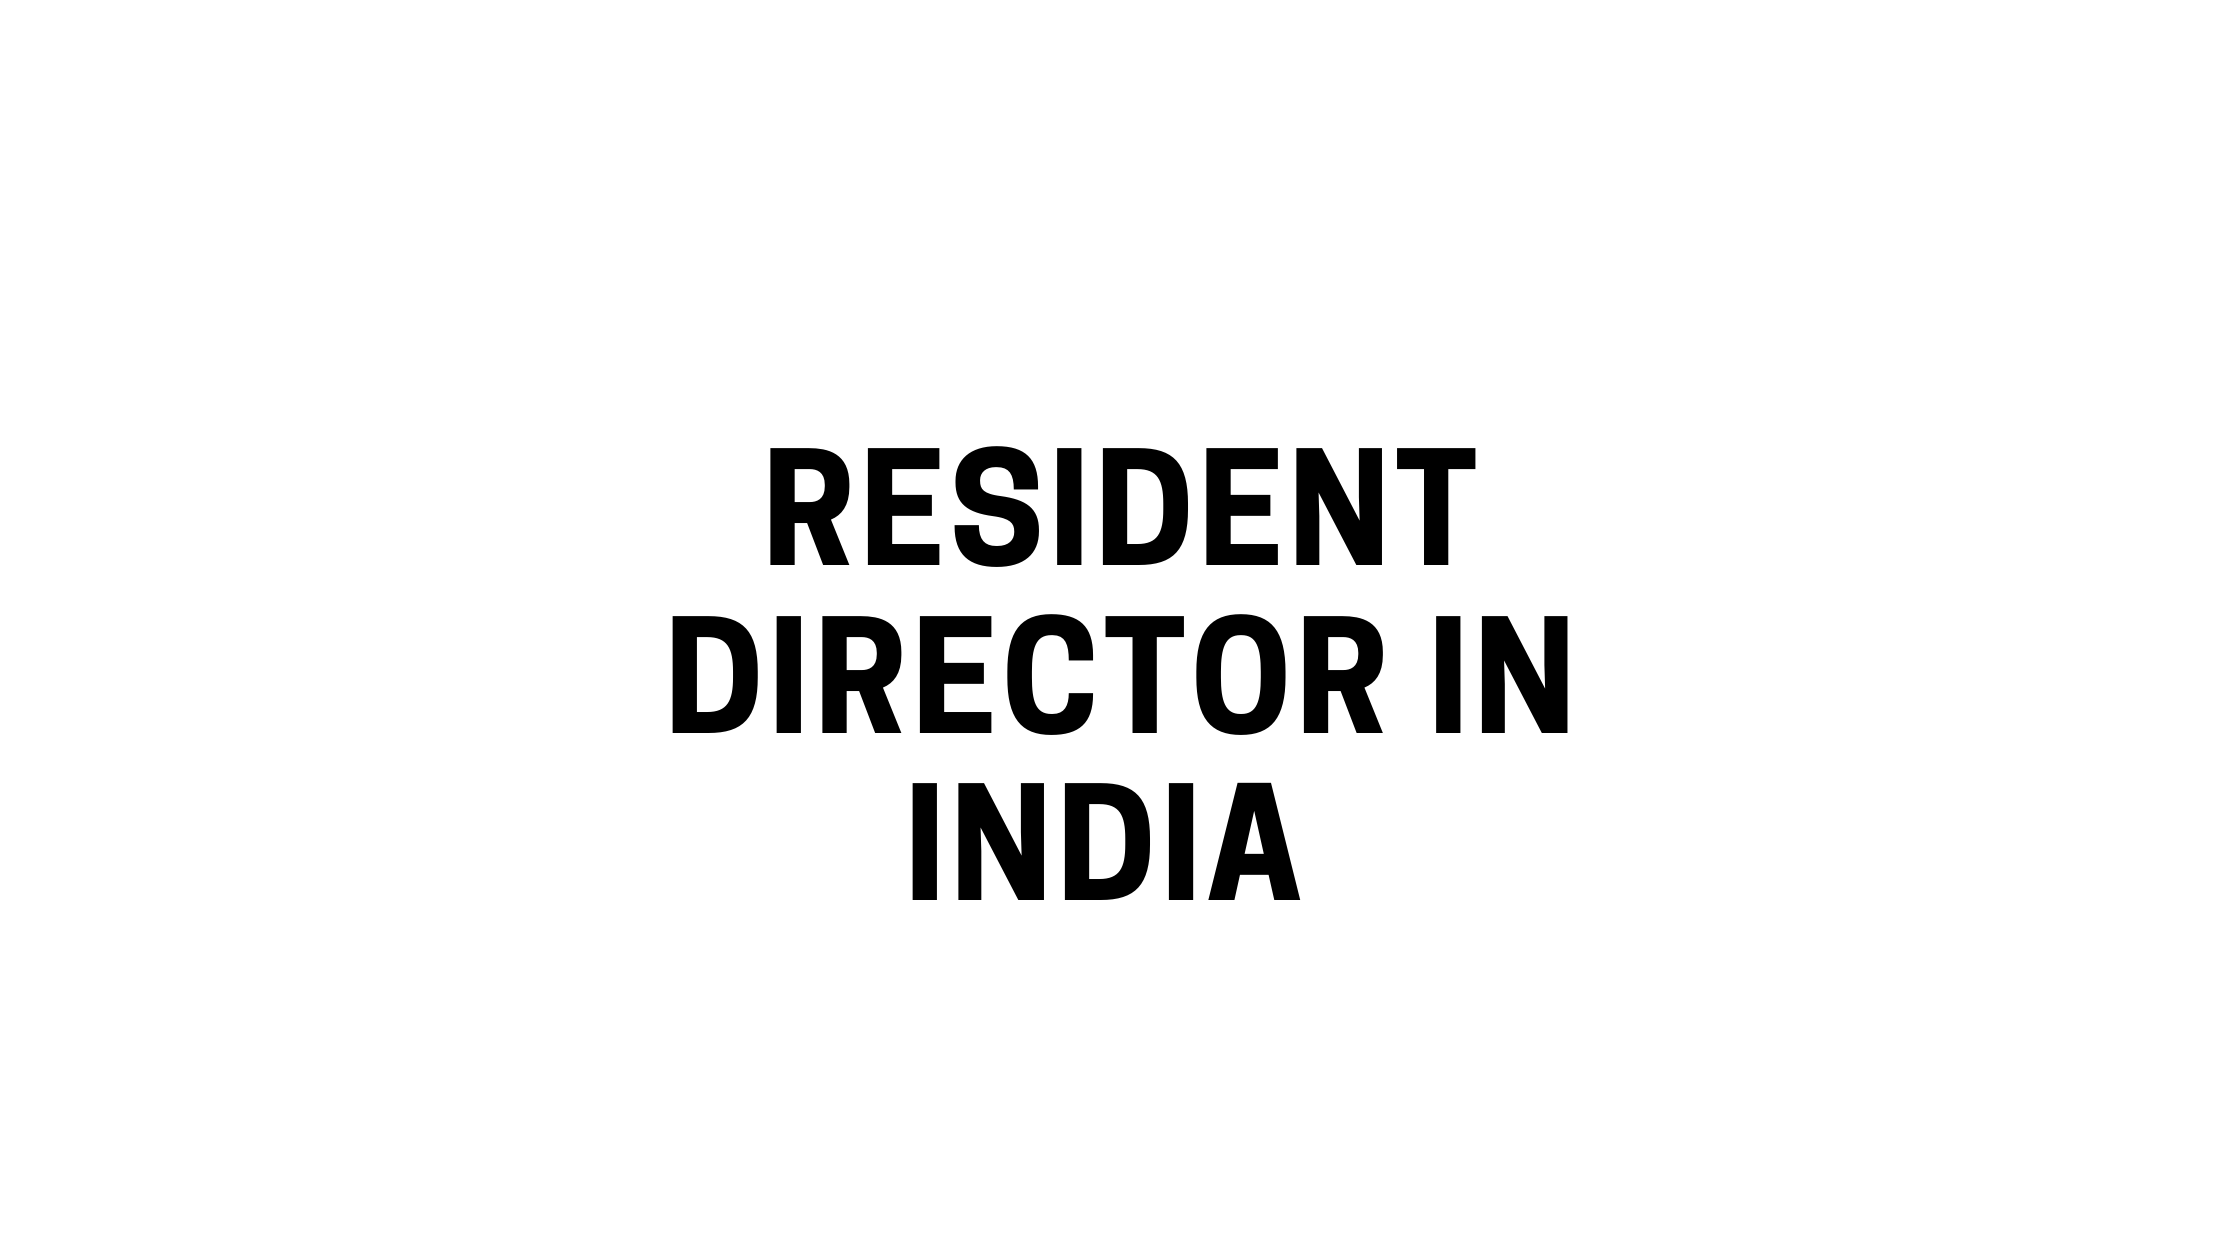 Resident Director in India